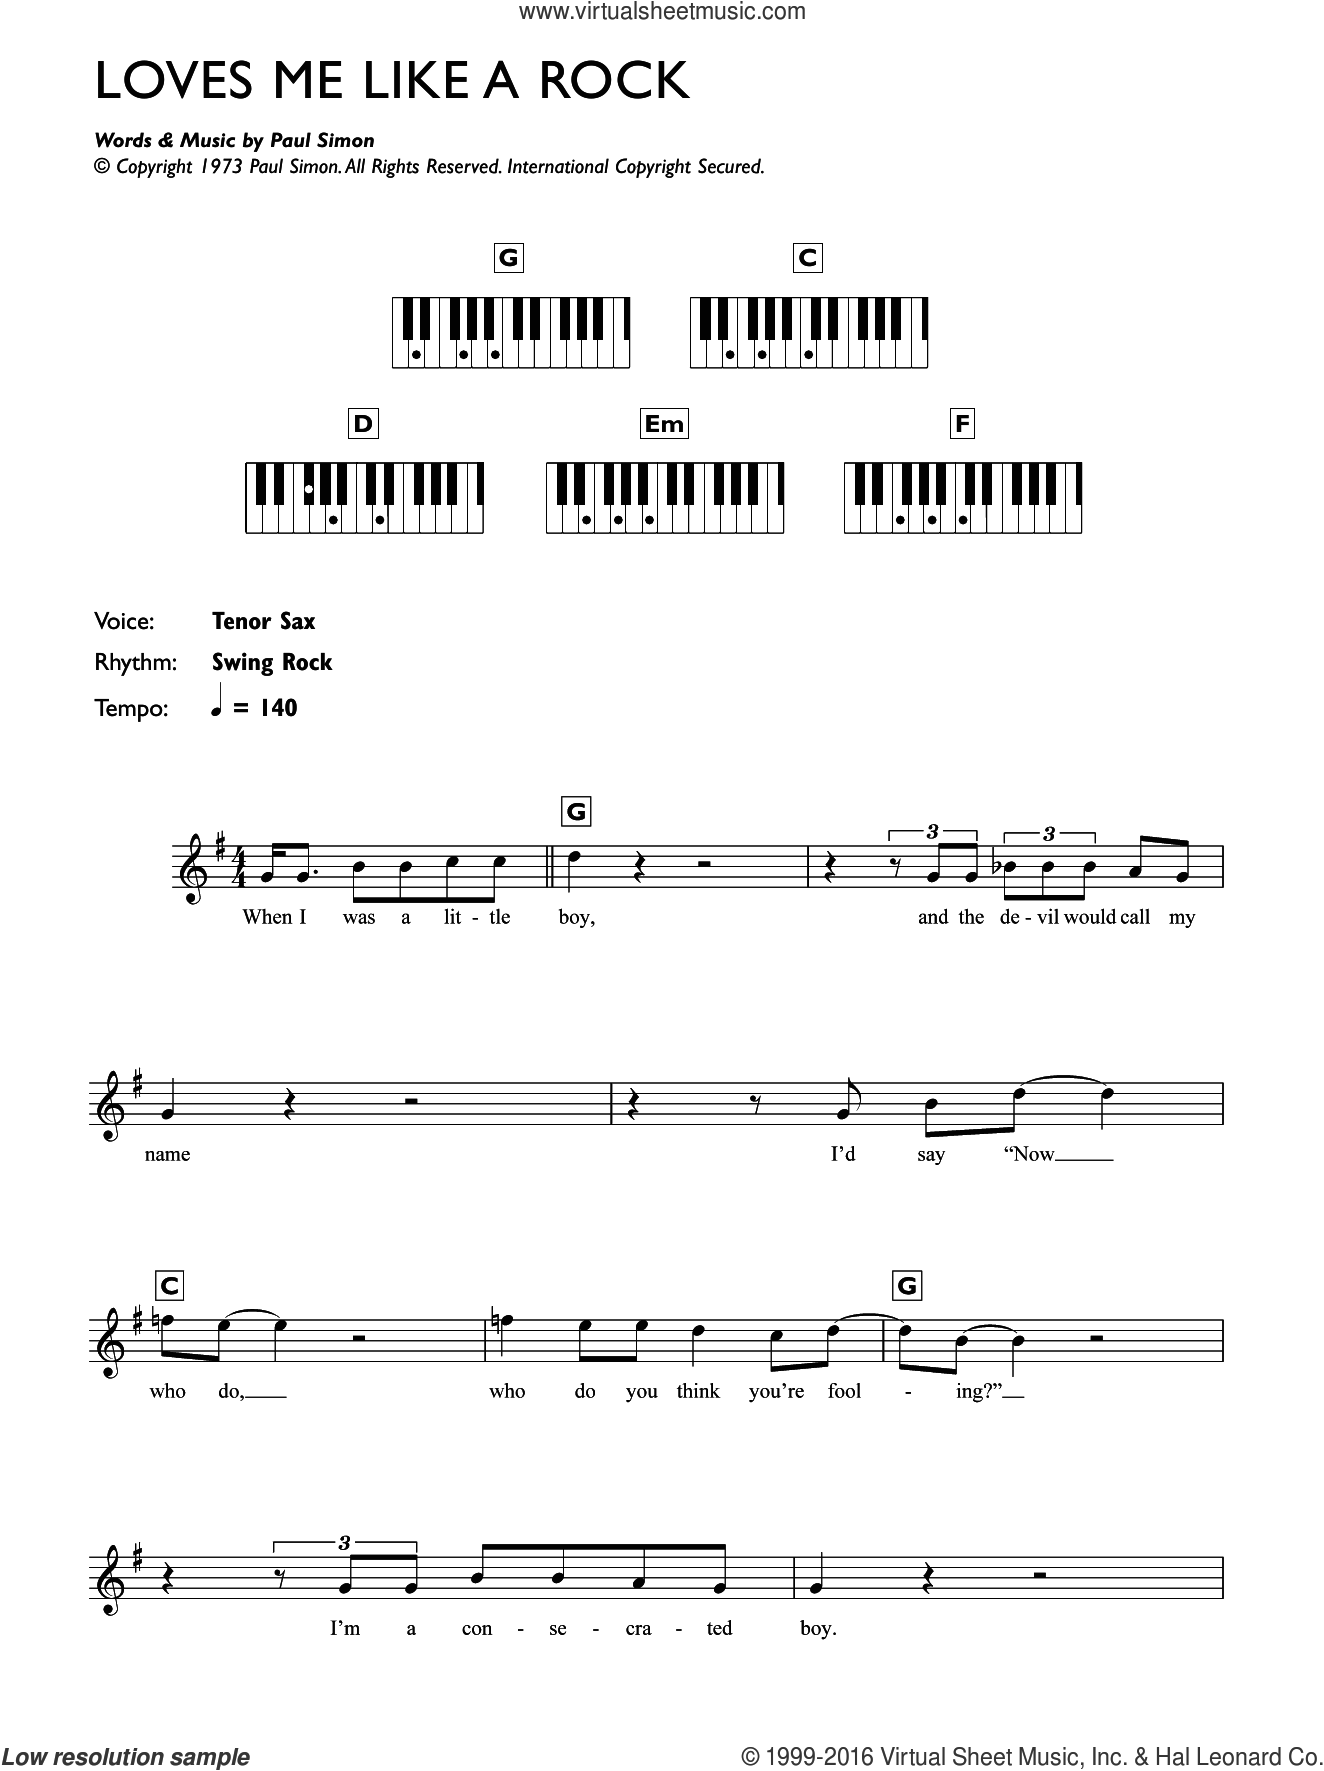 Loves Me Like A Rock sheet music for piano solo (chords, lyrics, melody) by Paul Simon. Score Image Preview.